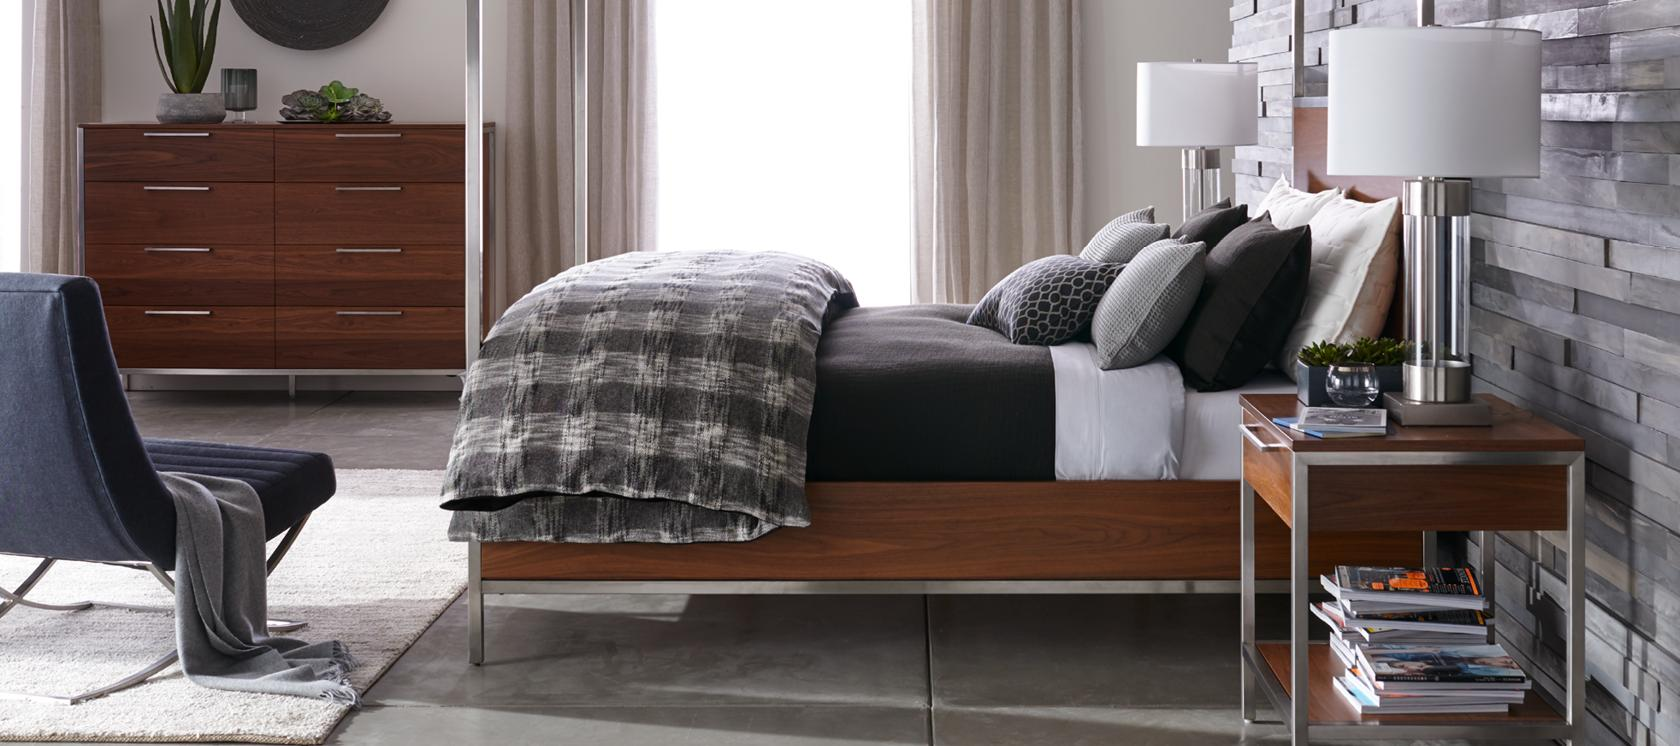 Furniture for your contemporary home crate and barrel - Crate barrel bedroom furniture ...